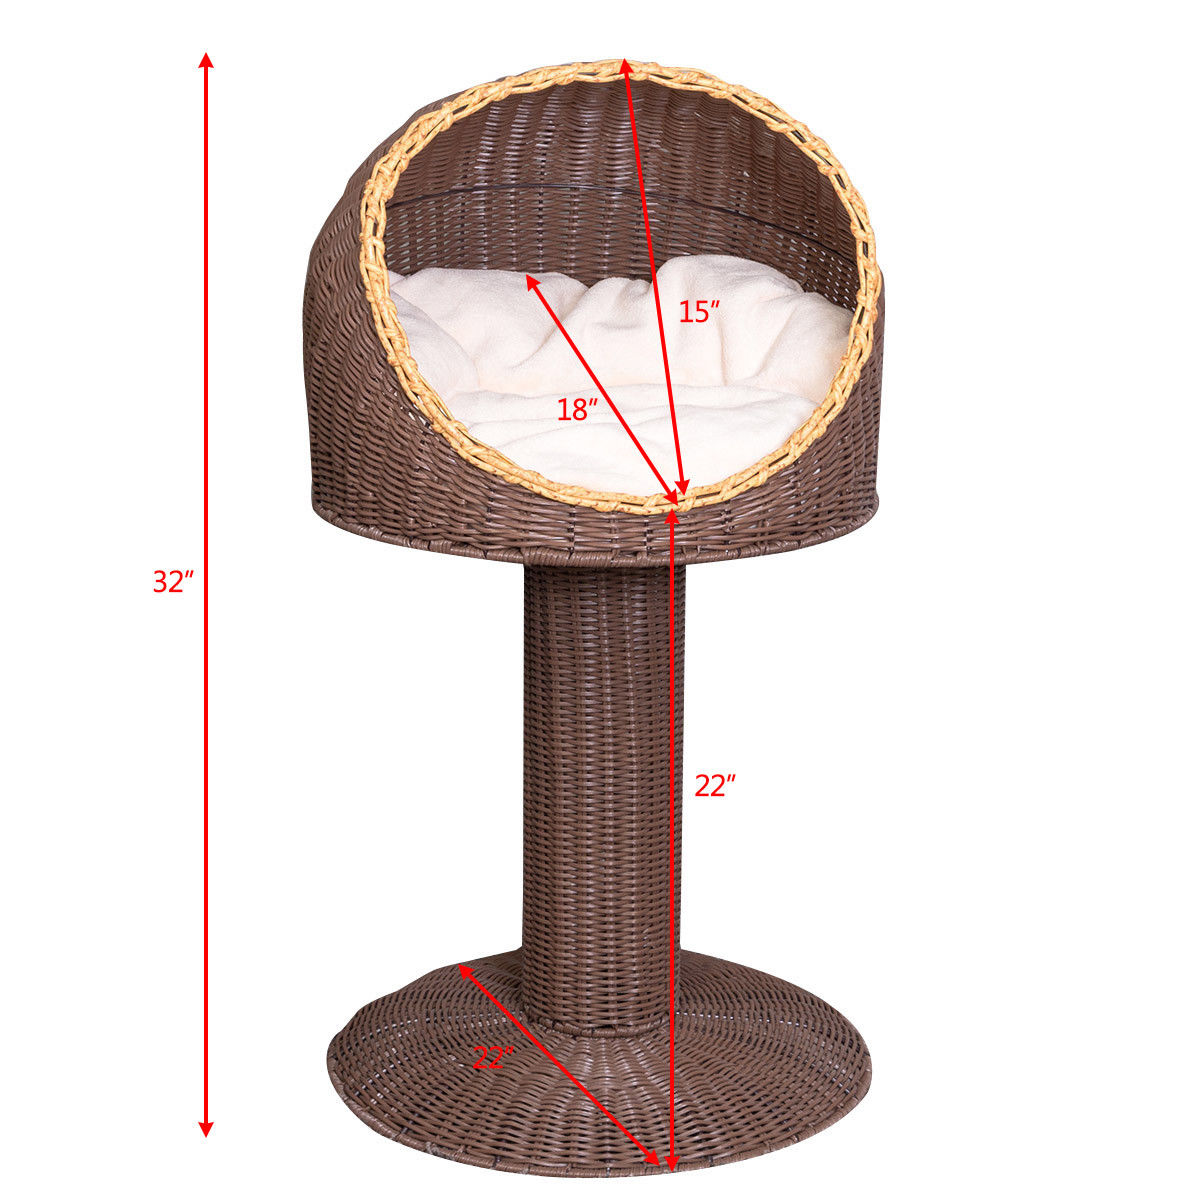 Gymax 17'' Cat Bed Home Ball Hooded Rattan Wicker Elevated Cat Kitten with Cushion - image 3 of 9